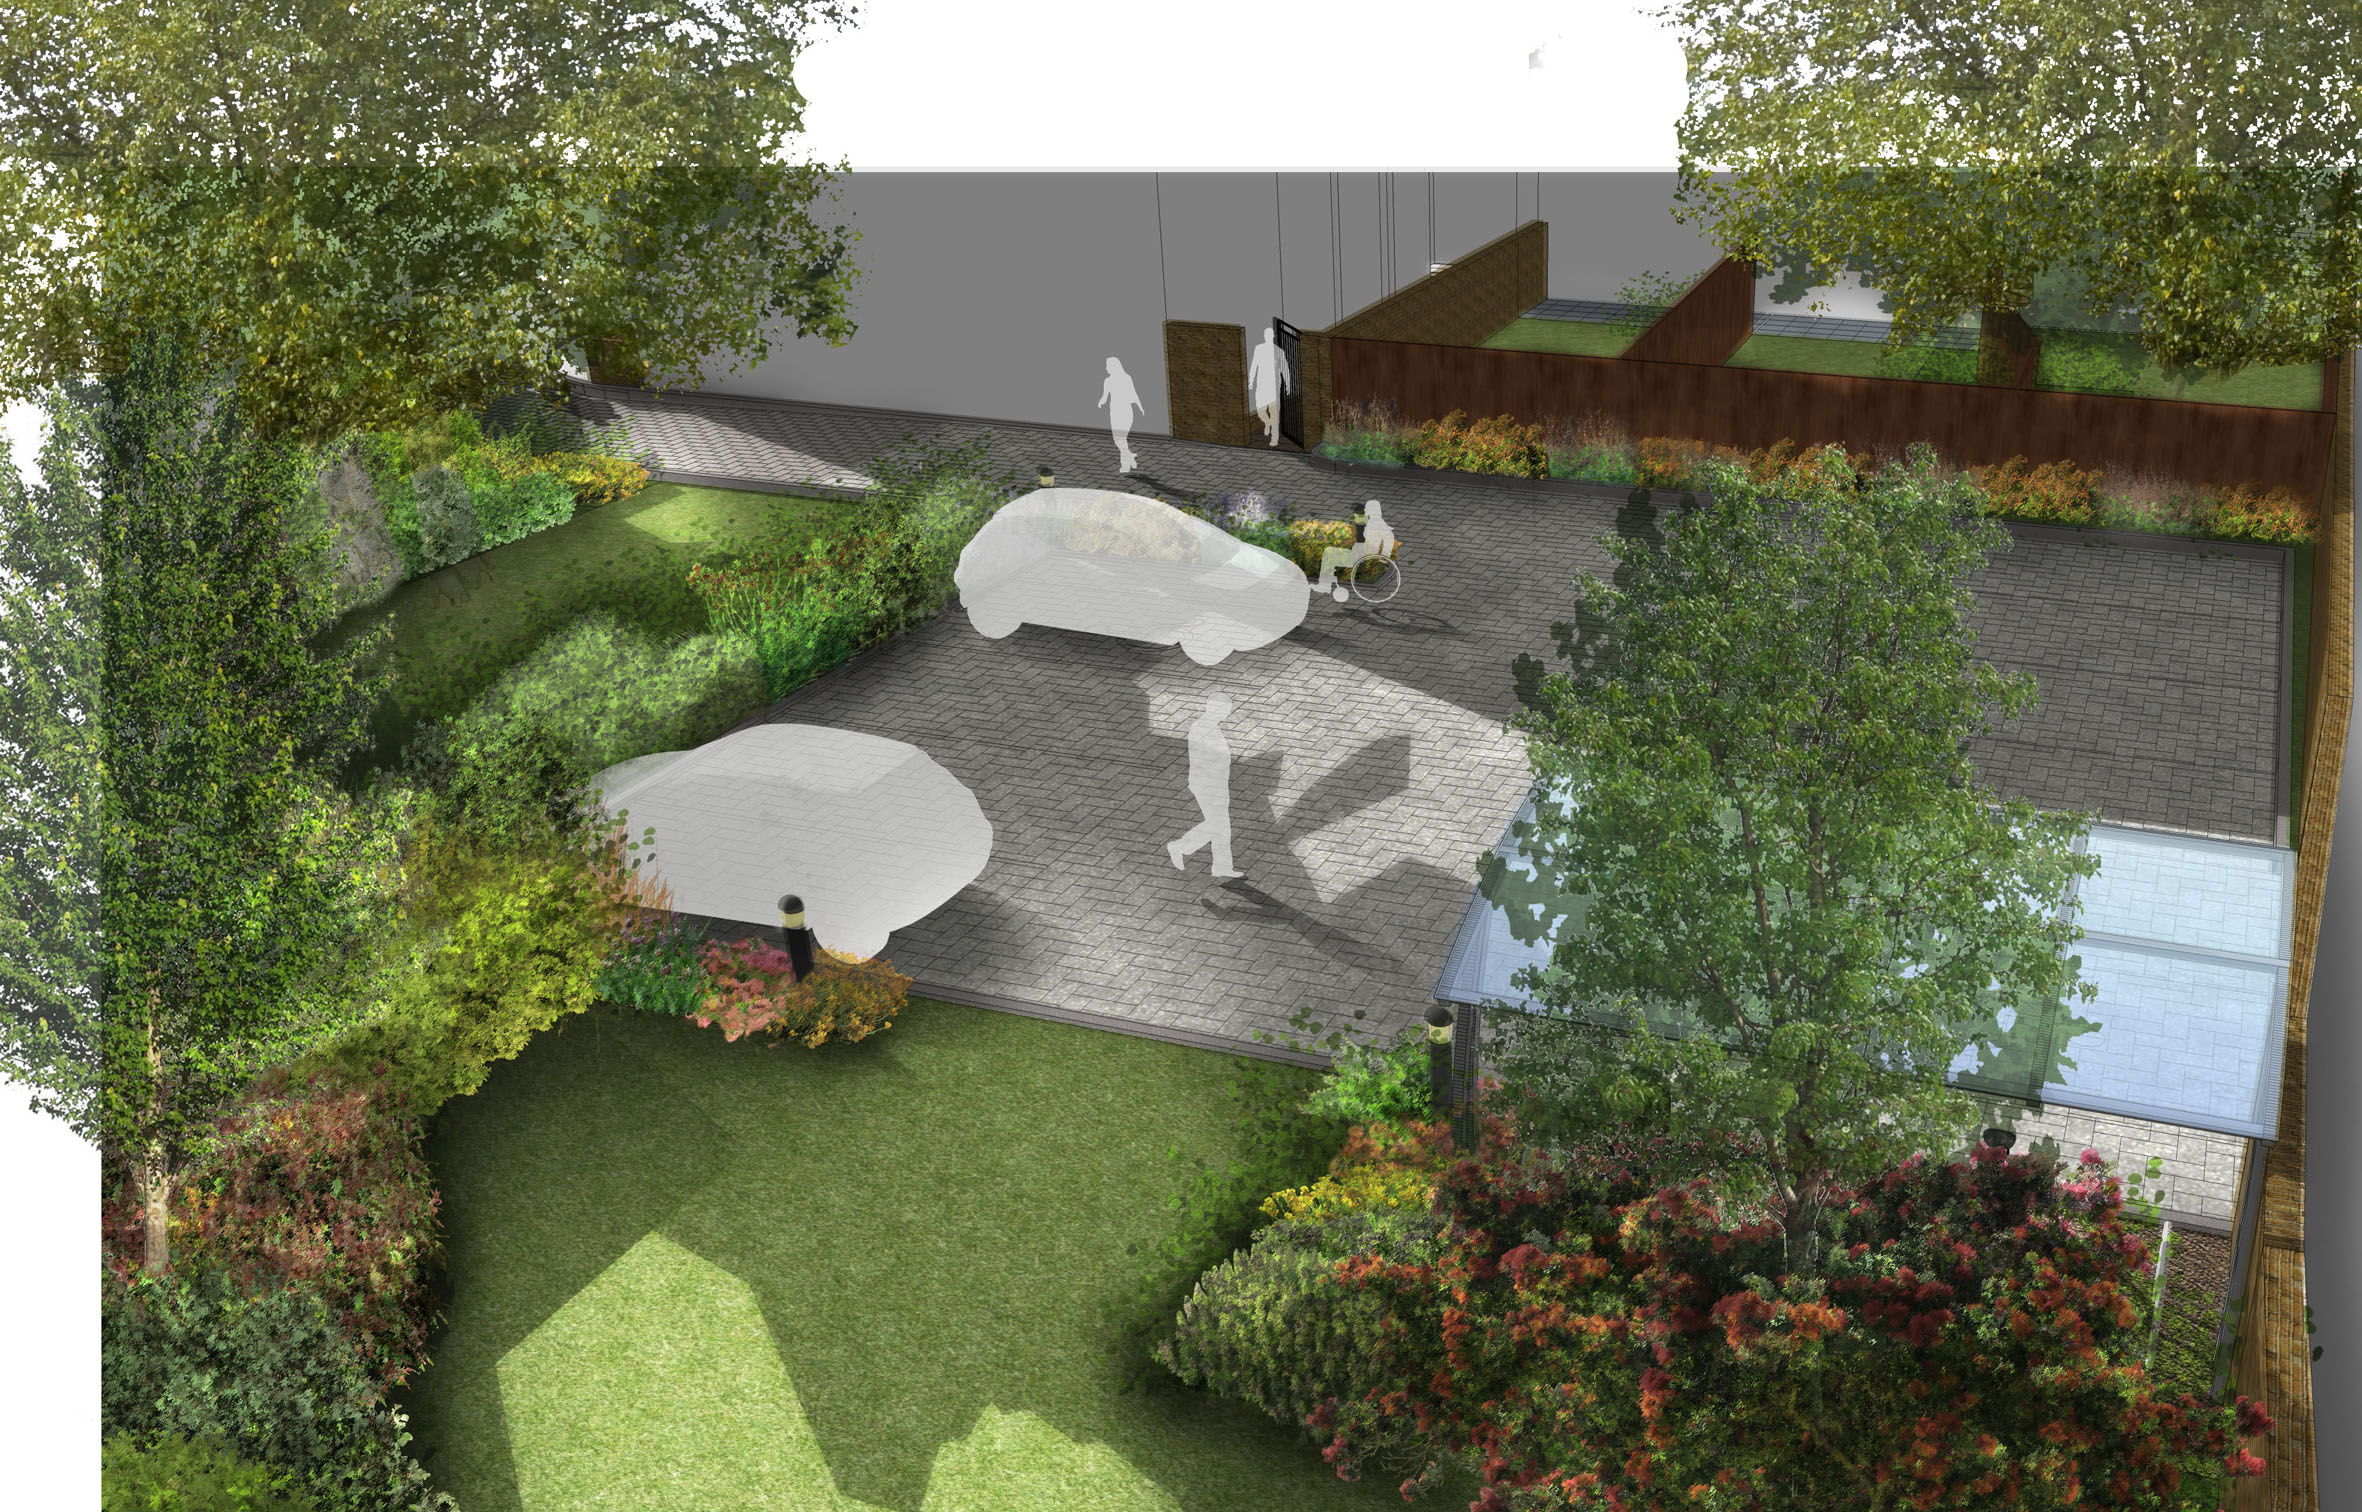 Davis landscape architecture little heath woolwich for Residential landscape architecture